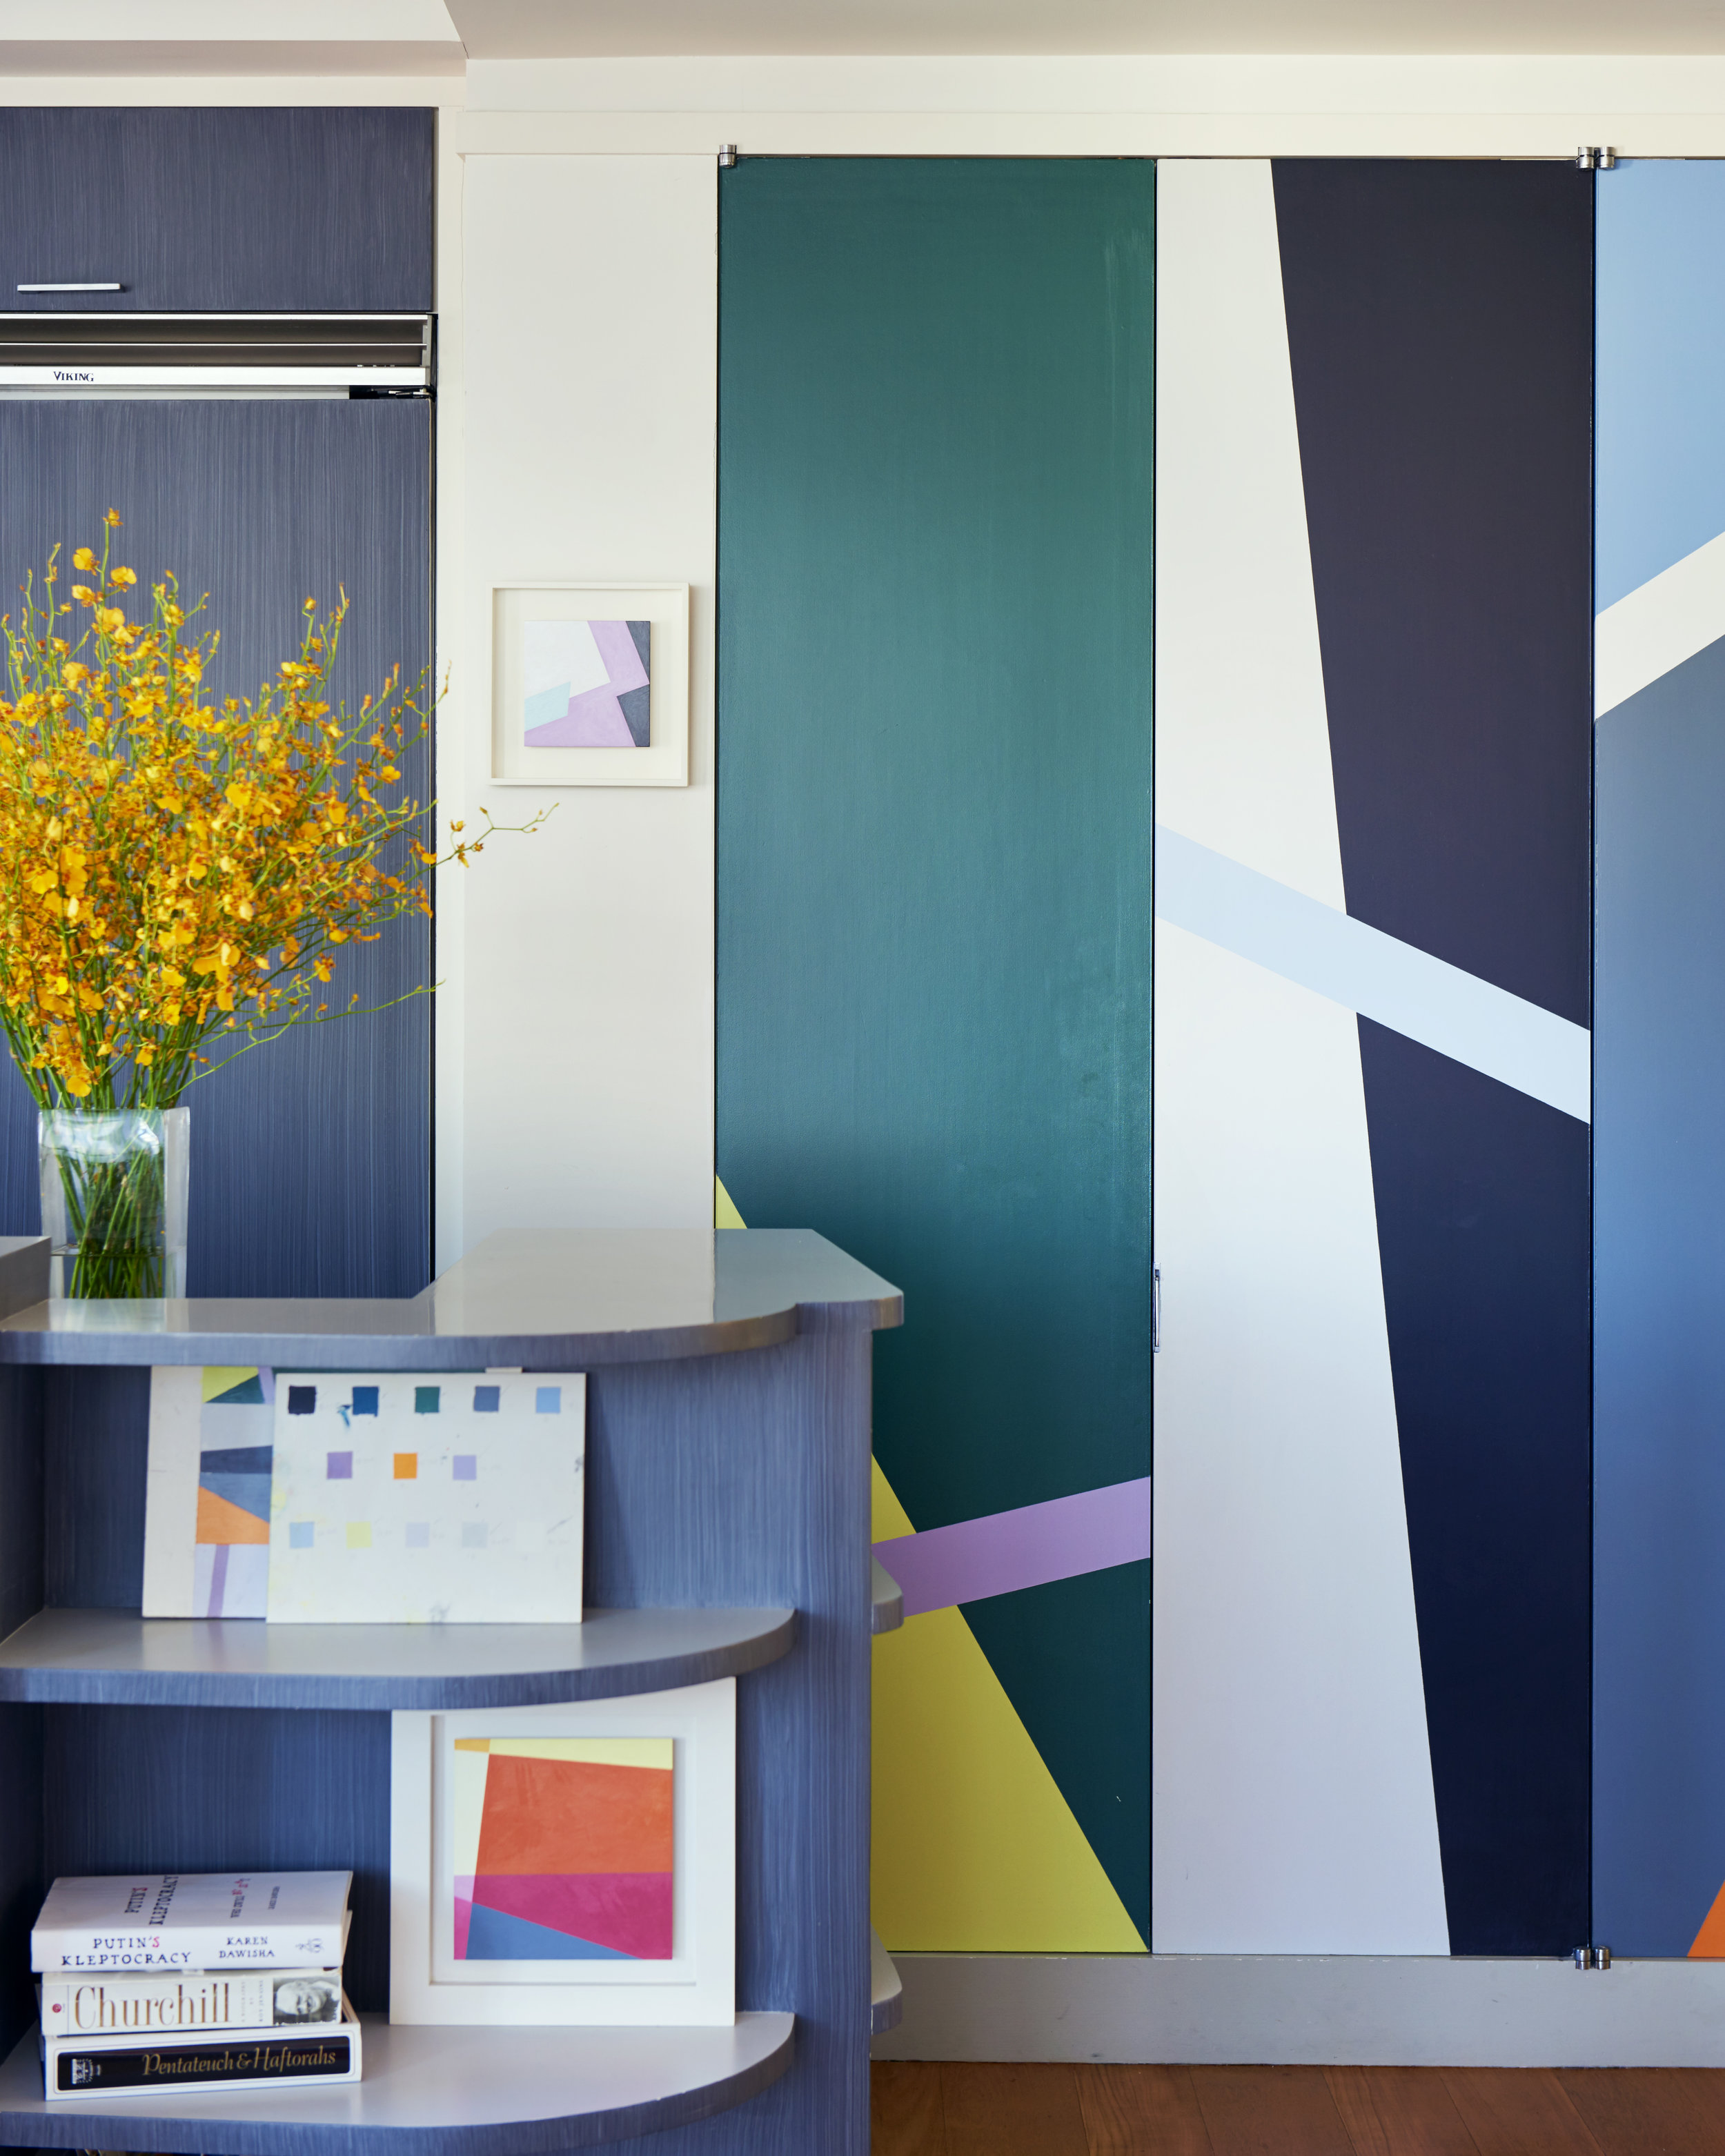 Seligson painted the pantry doors in vibrant hues. Photograph by Kyle Knodell. Courtesy Paddle8.